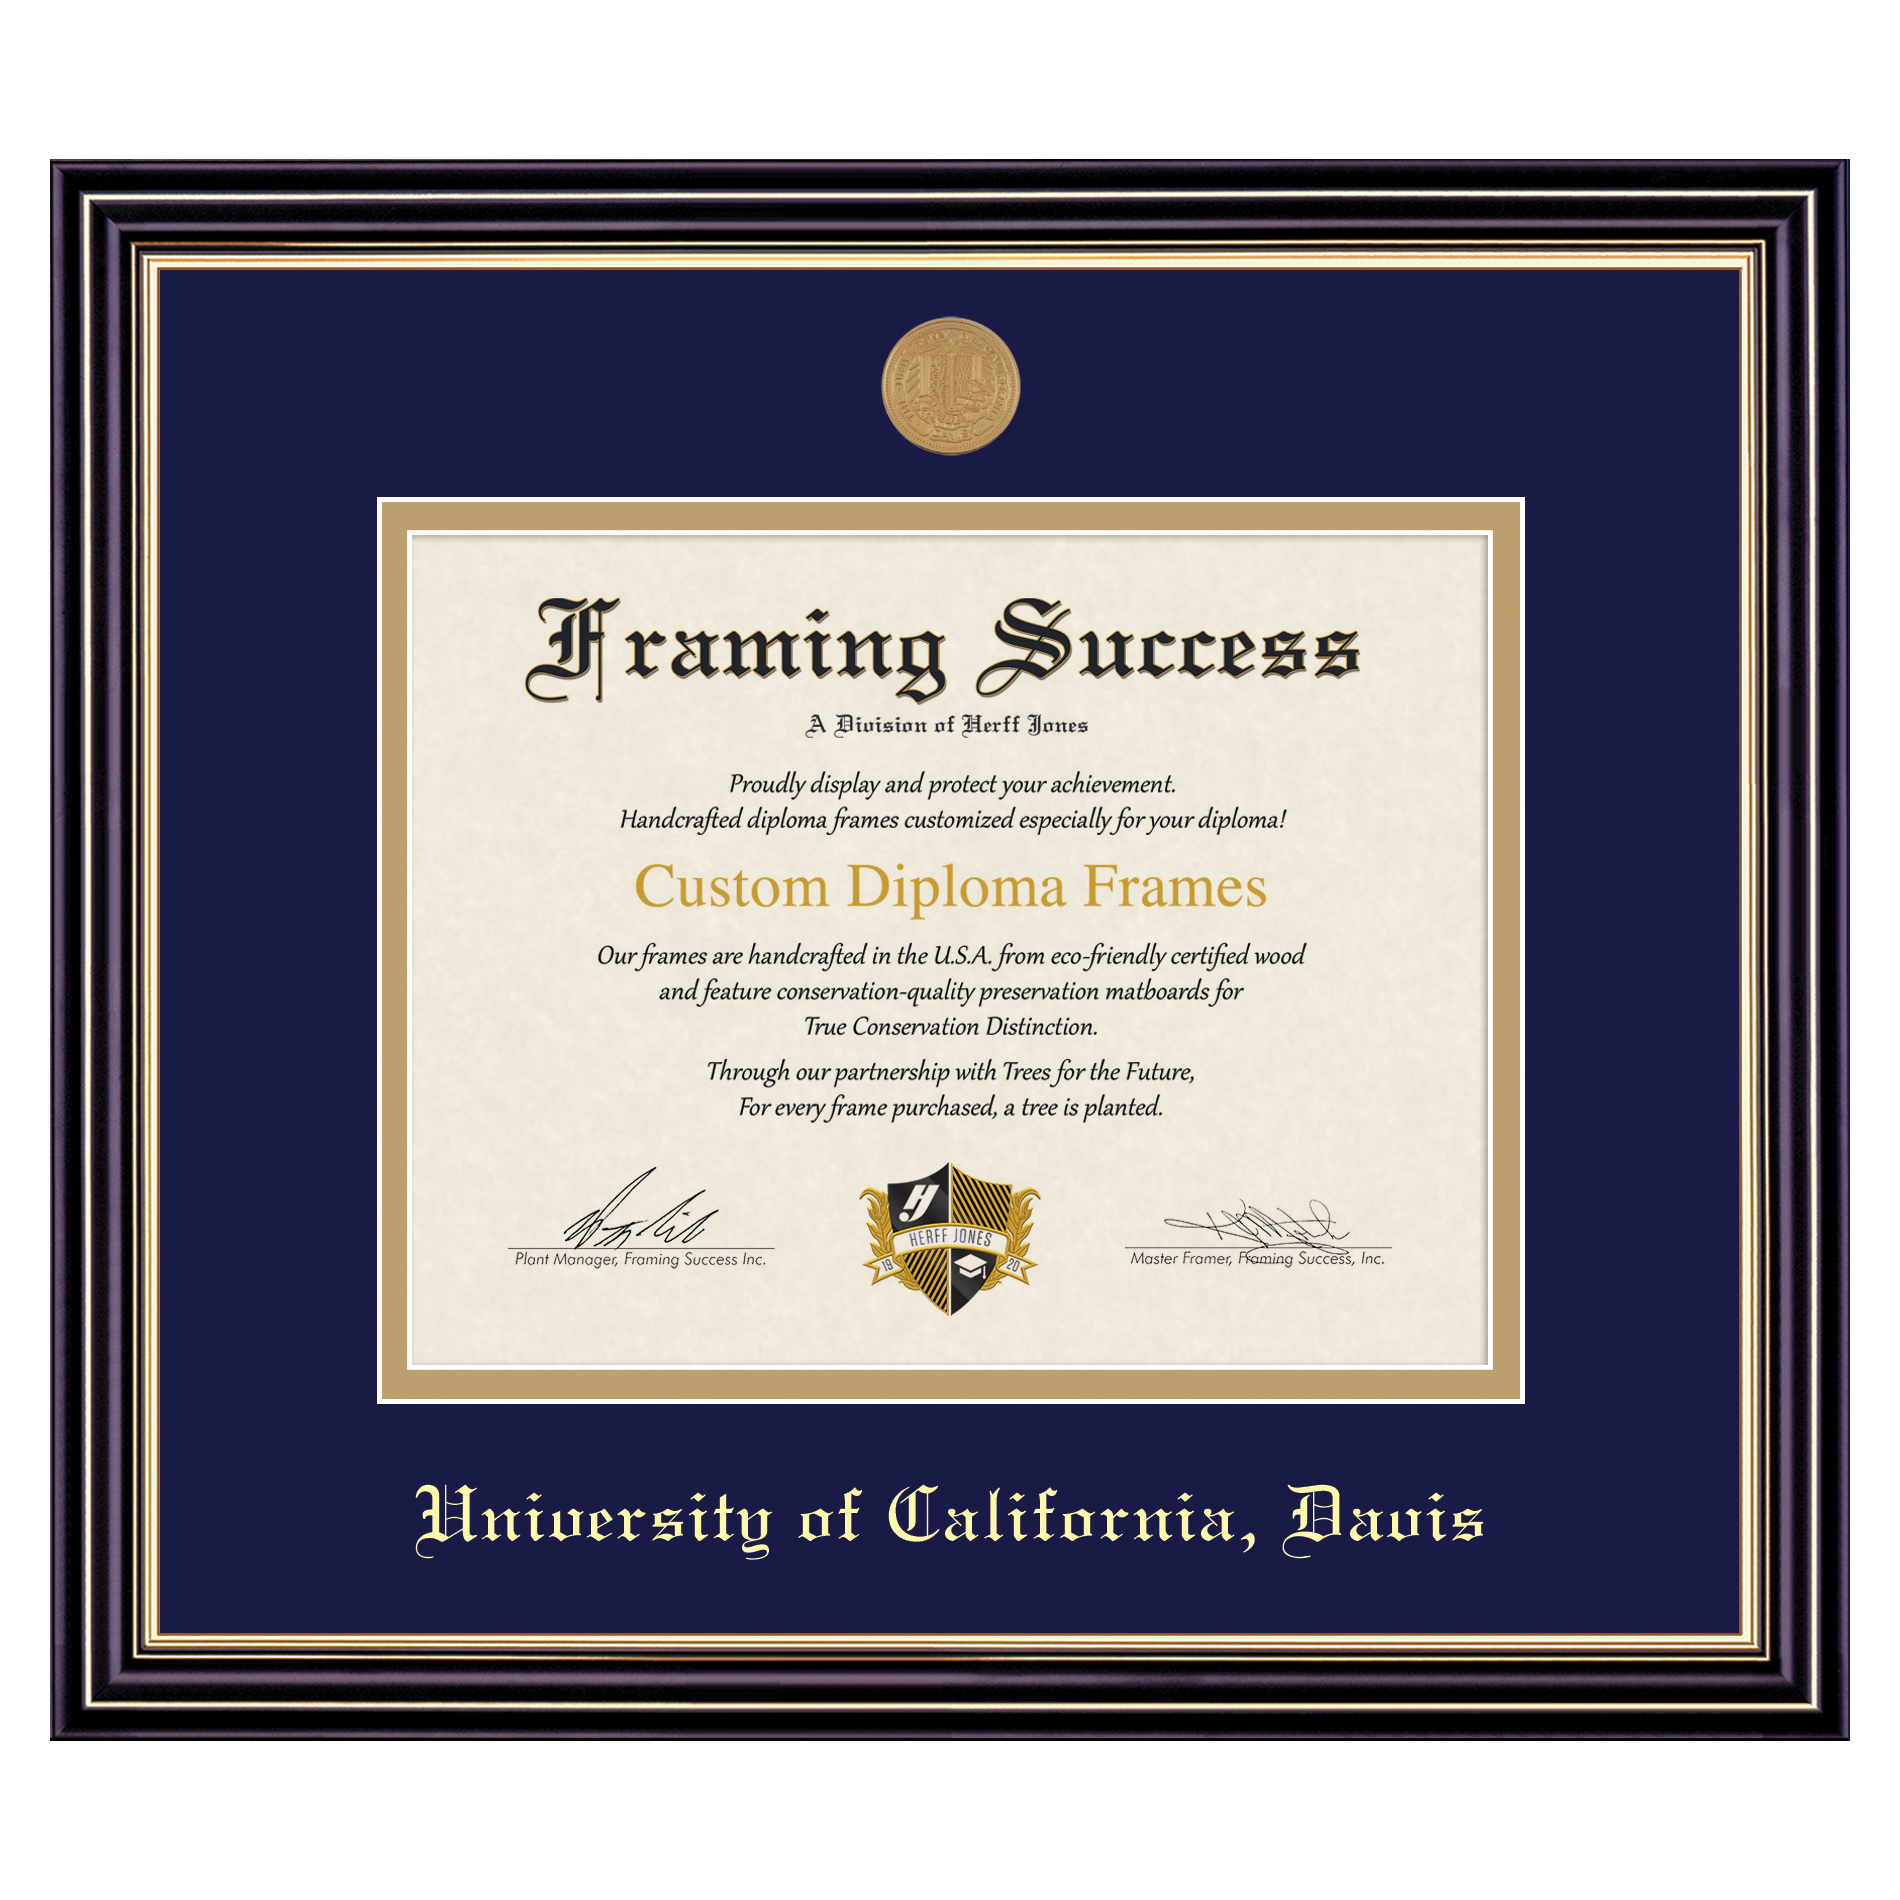 Image For Framing Success Diploma Frame Prestige Finish